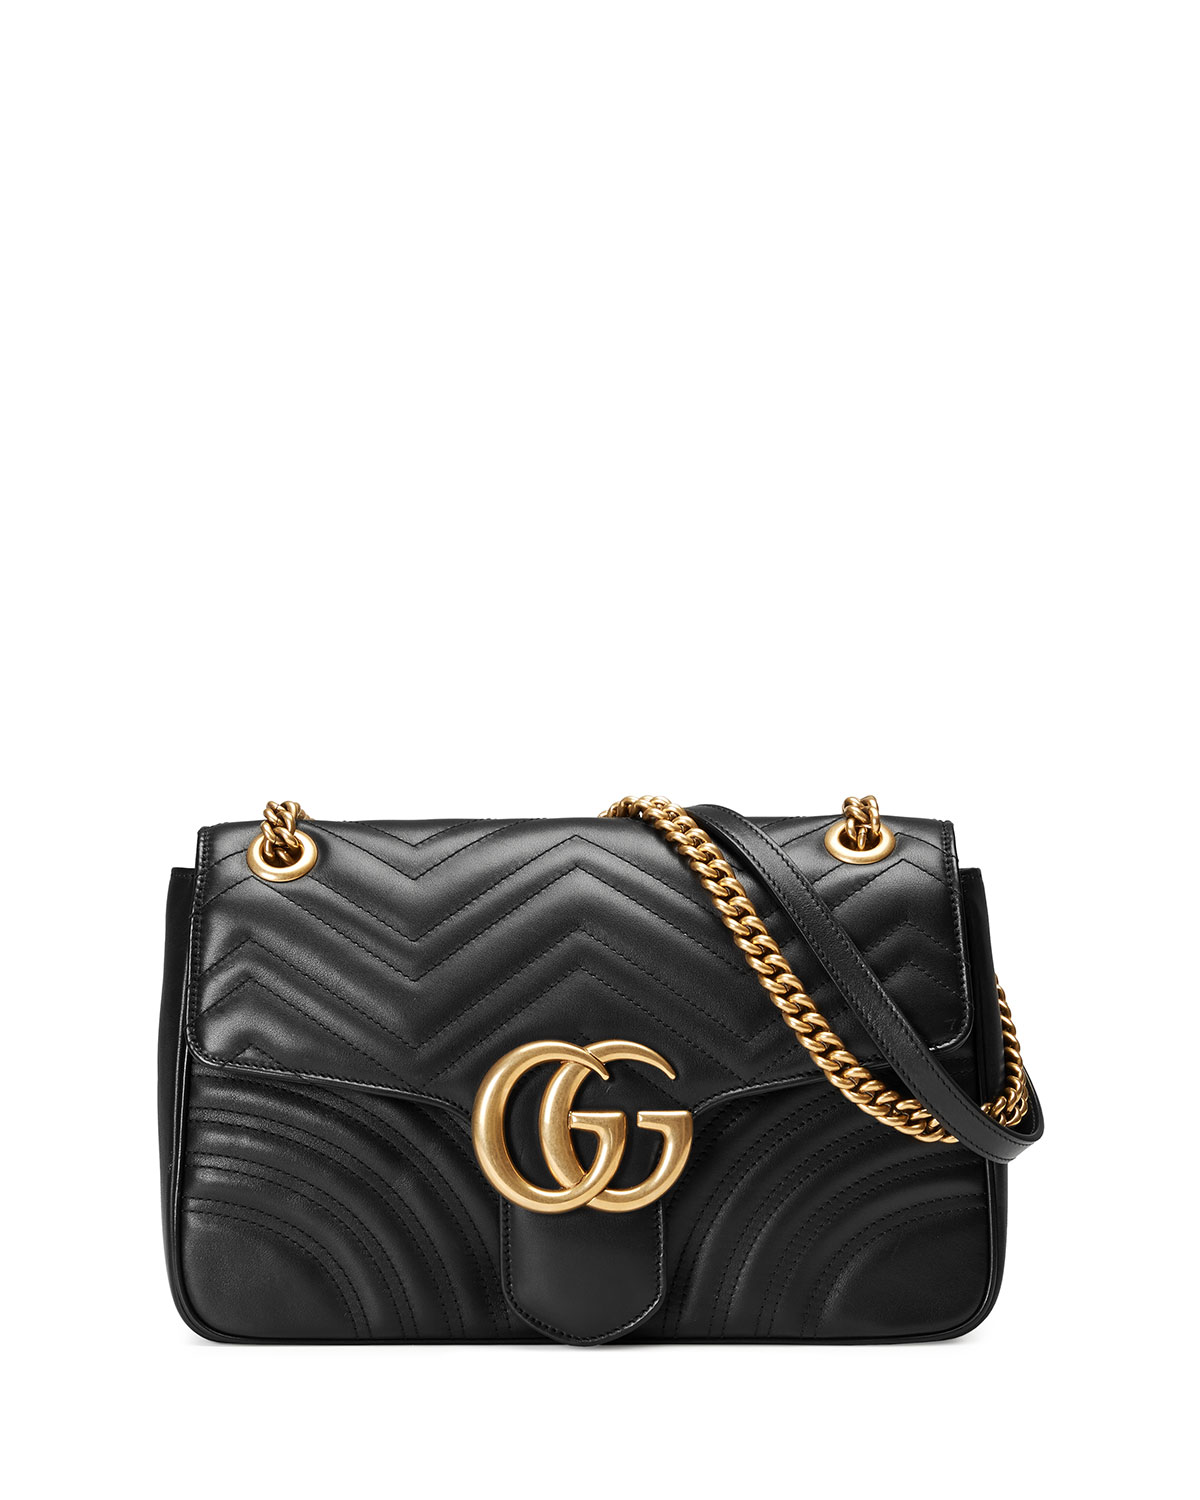 1bb198ebafb9 Gucci GG Marmont 2.0 Medium Quilted Shoulder Bag, Black | Neiman Marcus